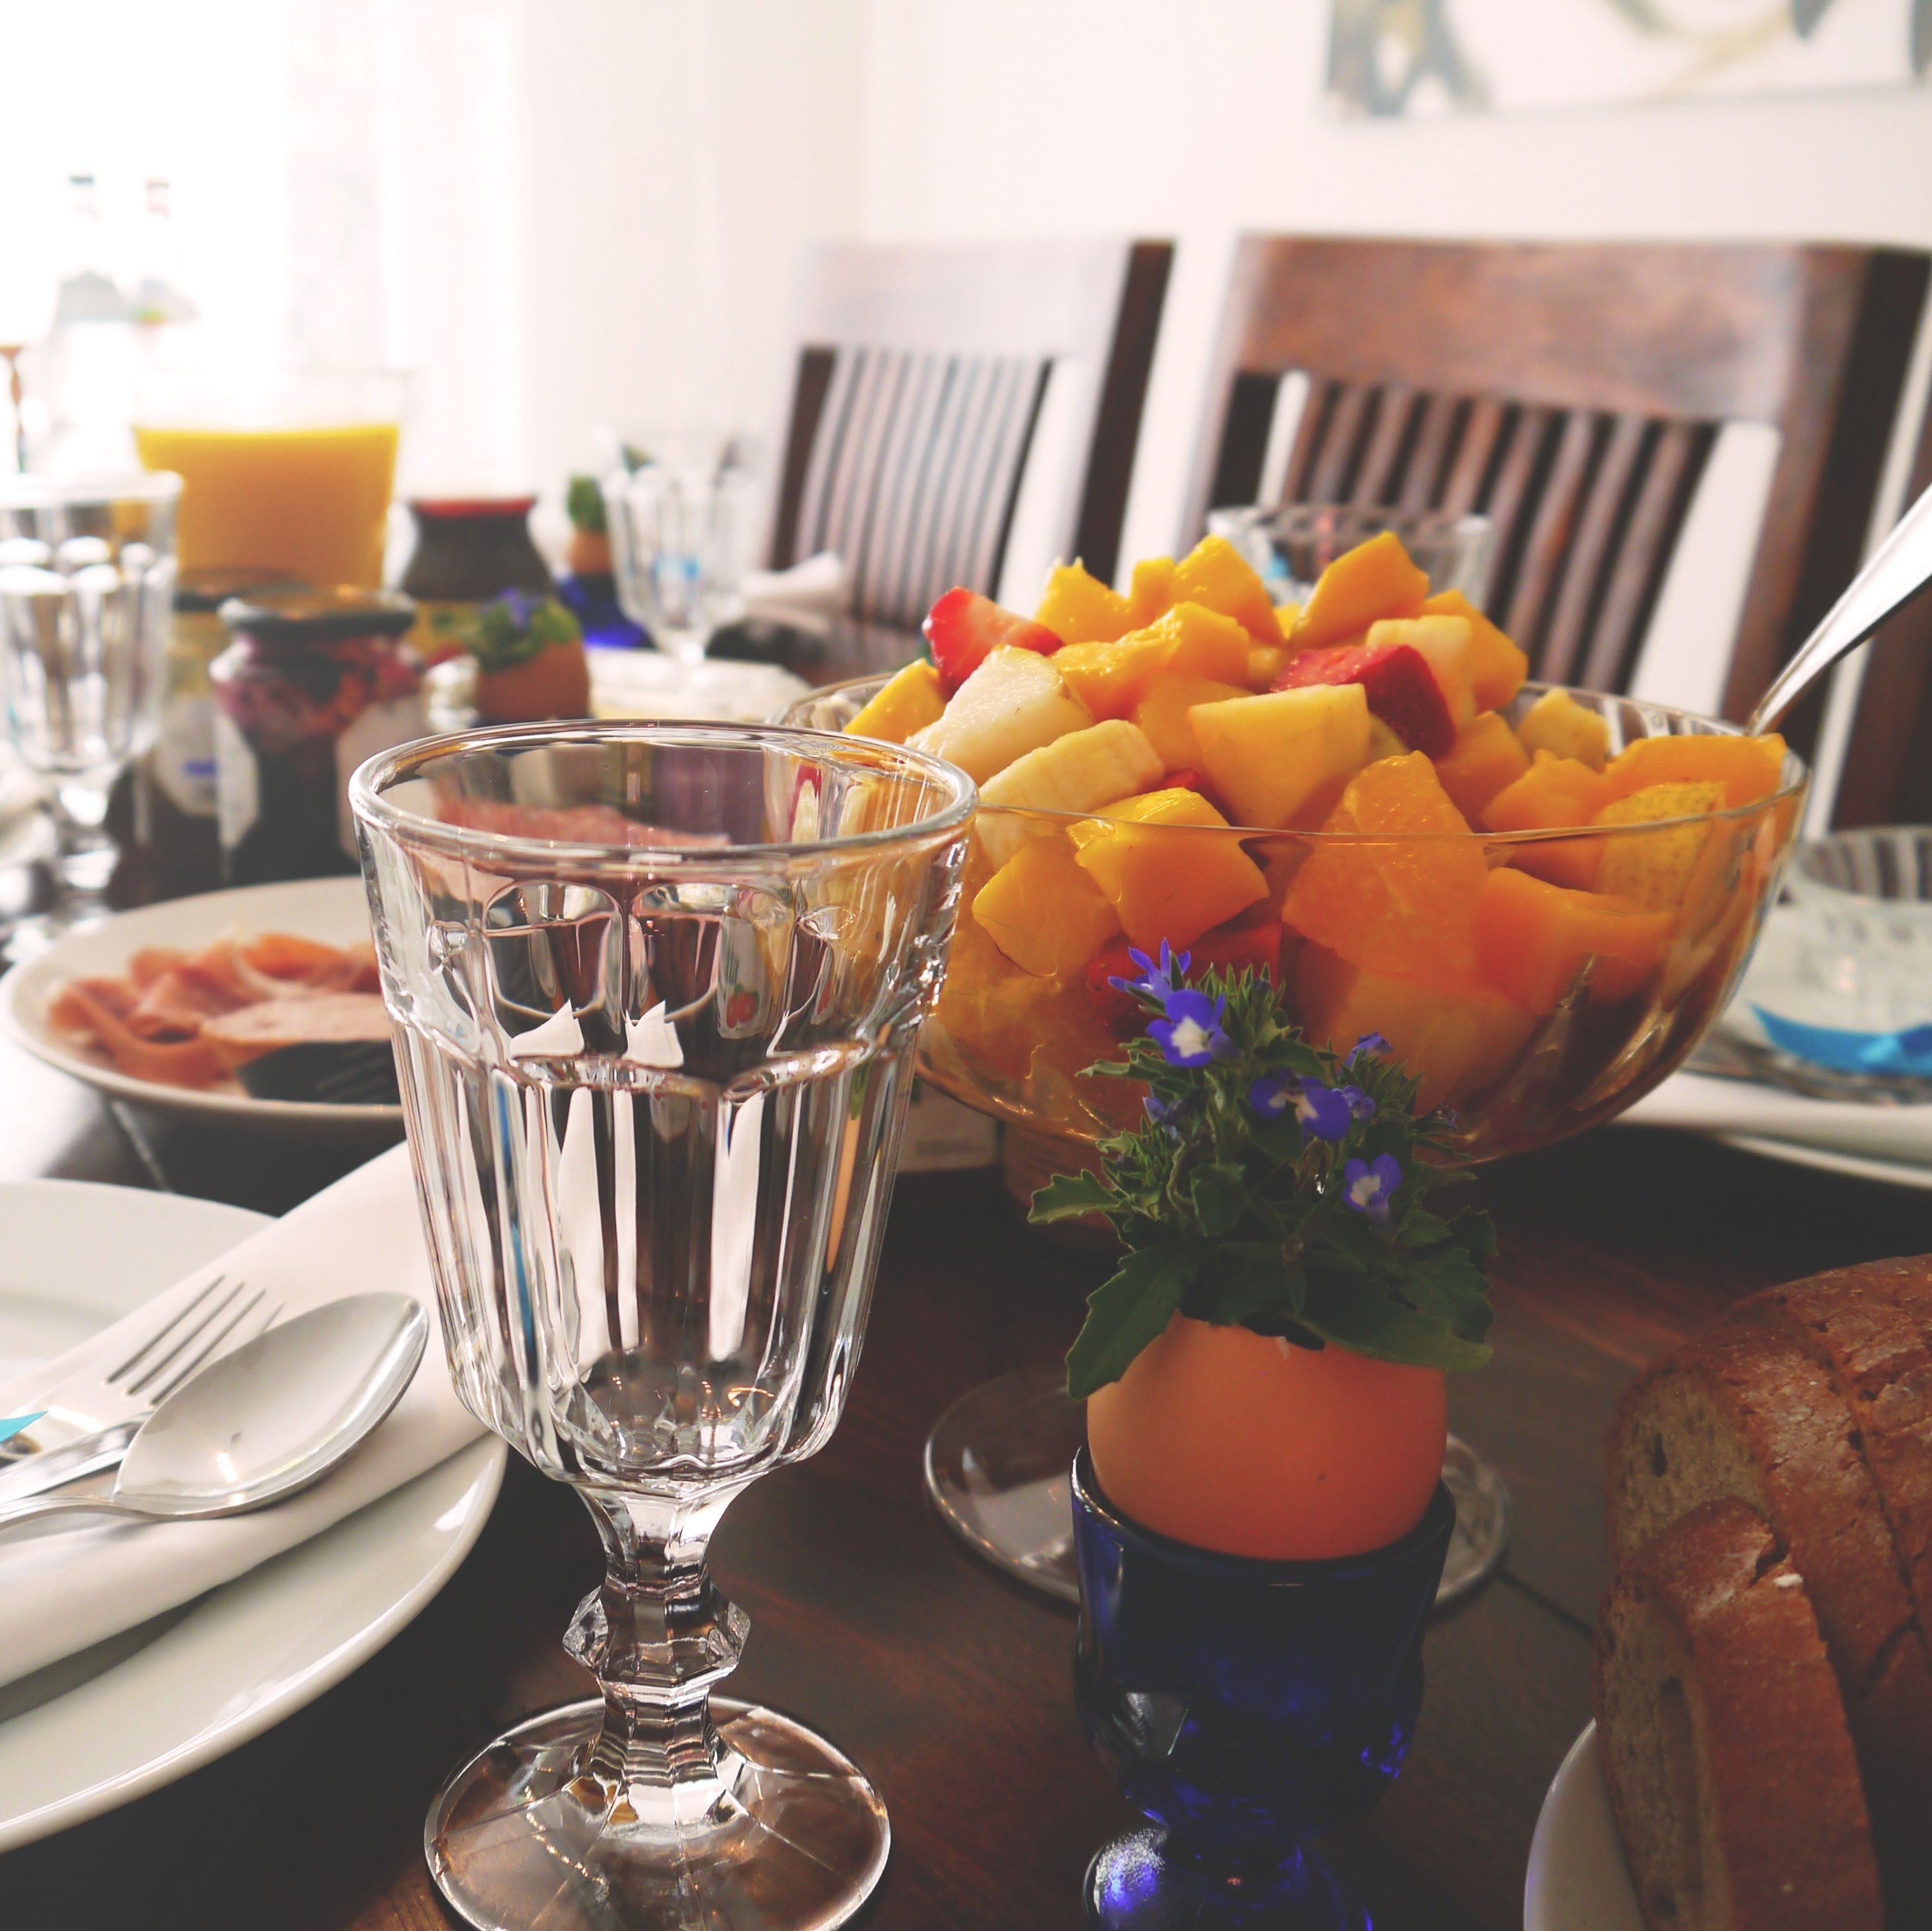 10 Steps To A Better Restaurant Event, Just In Time For